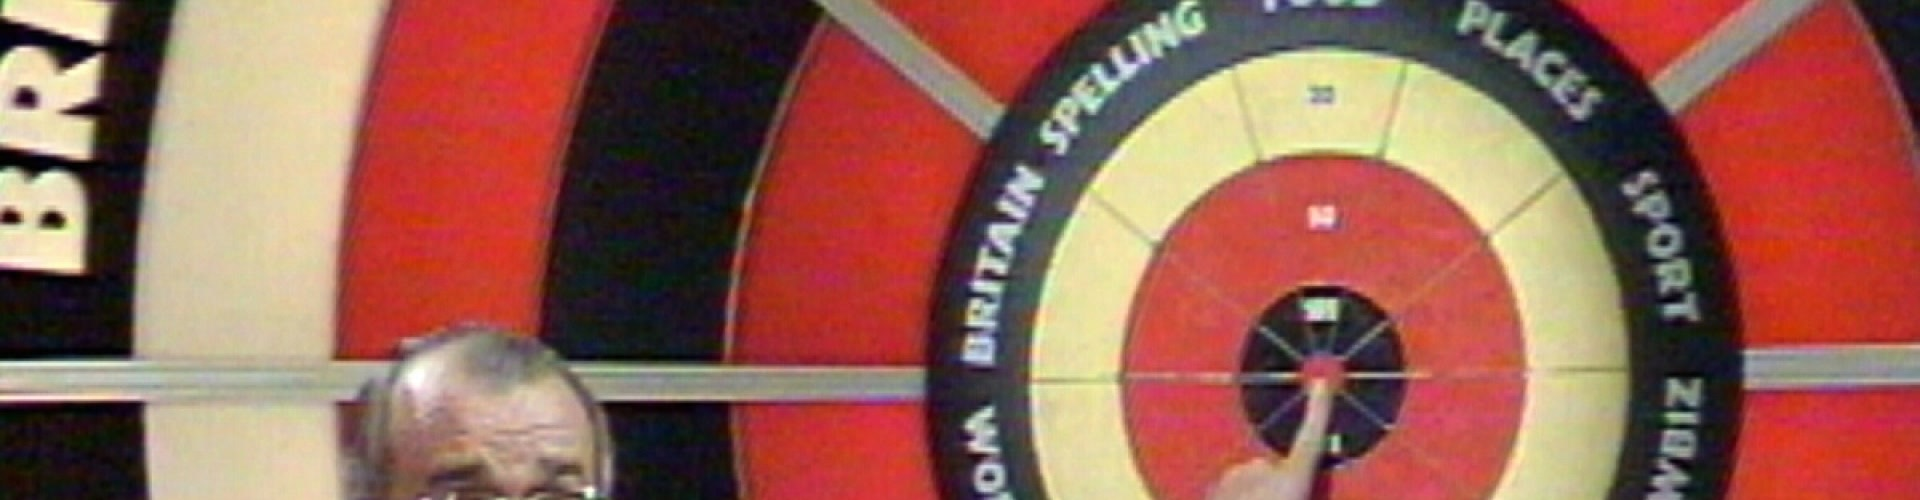 Watch Bullseye Online